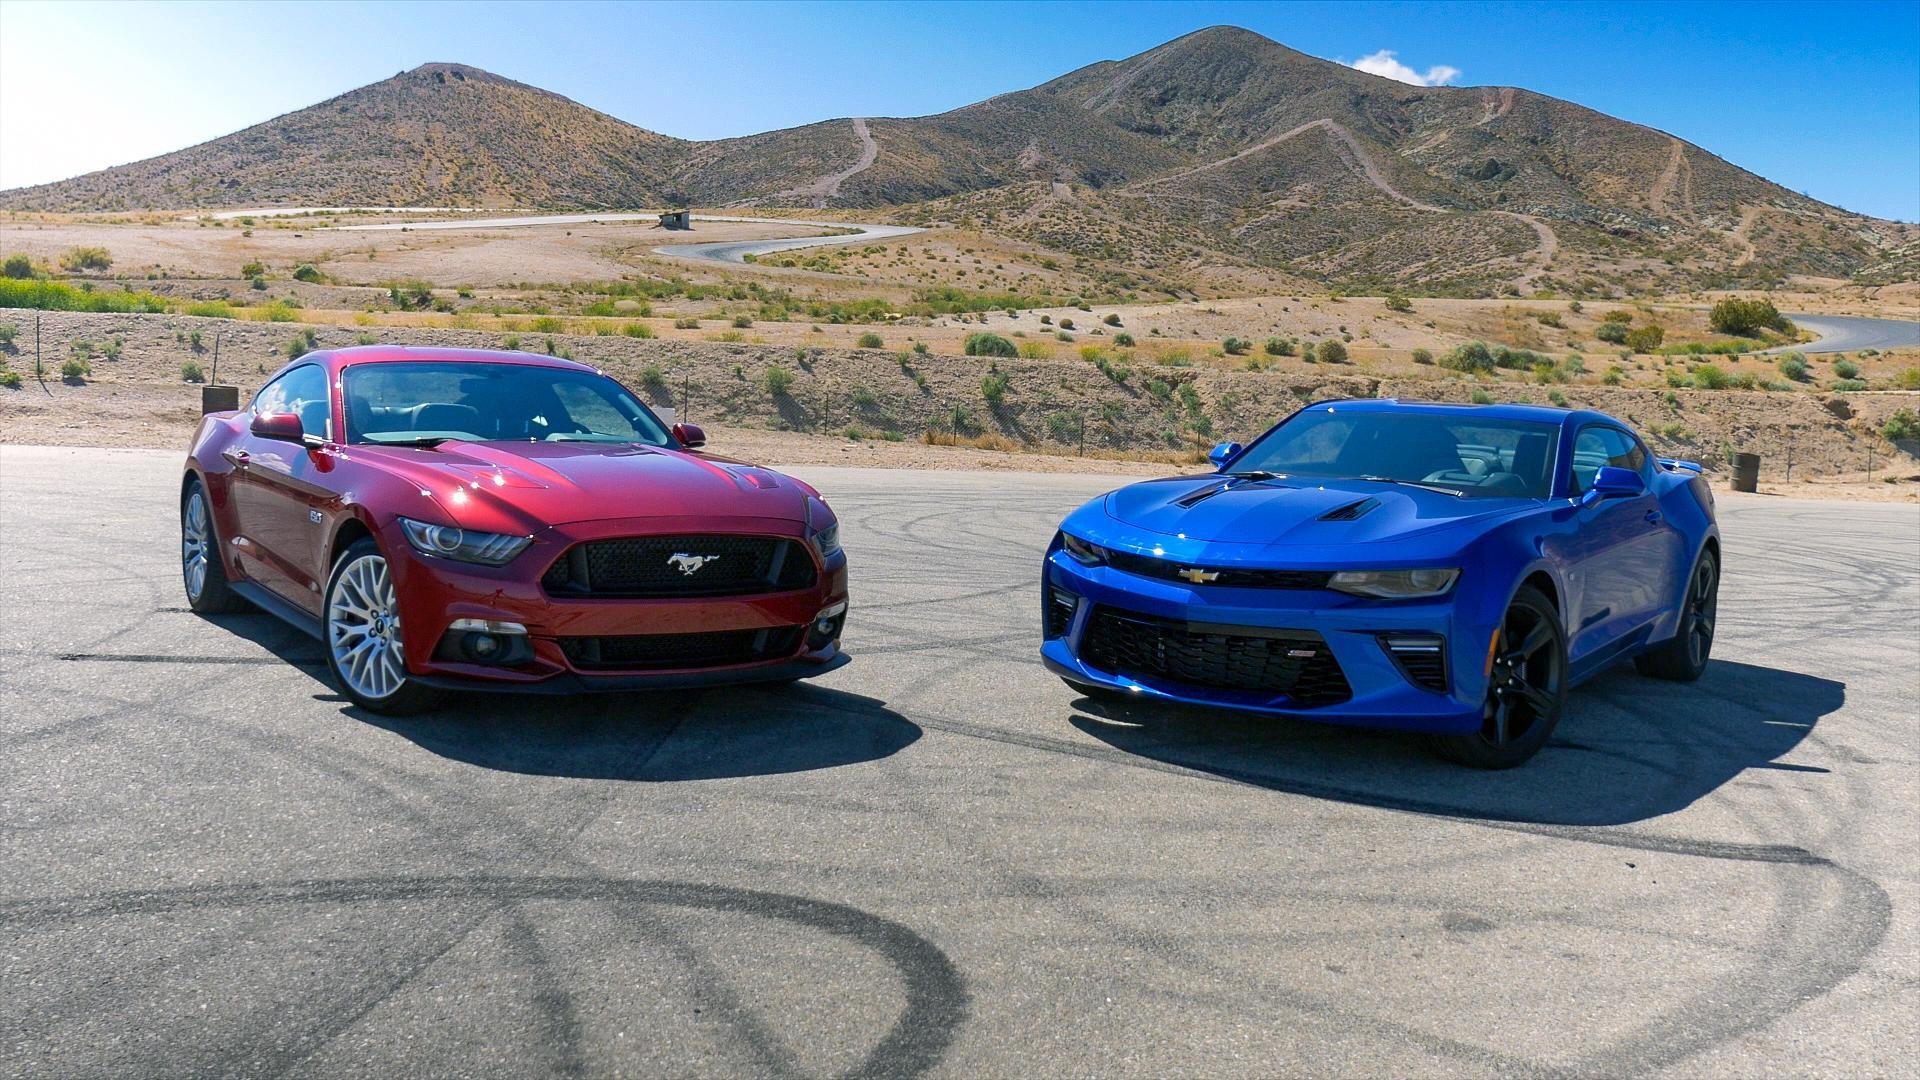 2018 Ford Mustang Gt Has More Horsepower Than Chevy Camaro